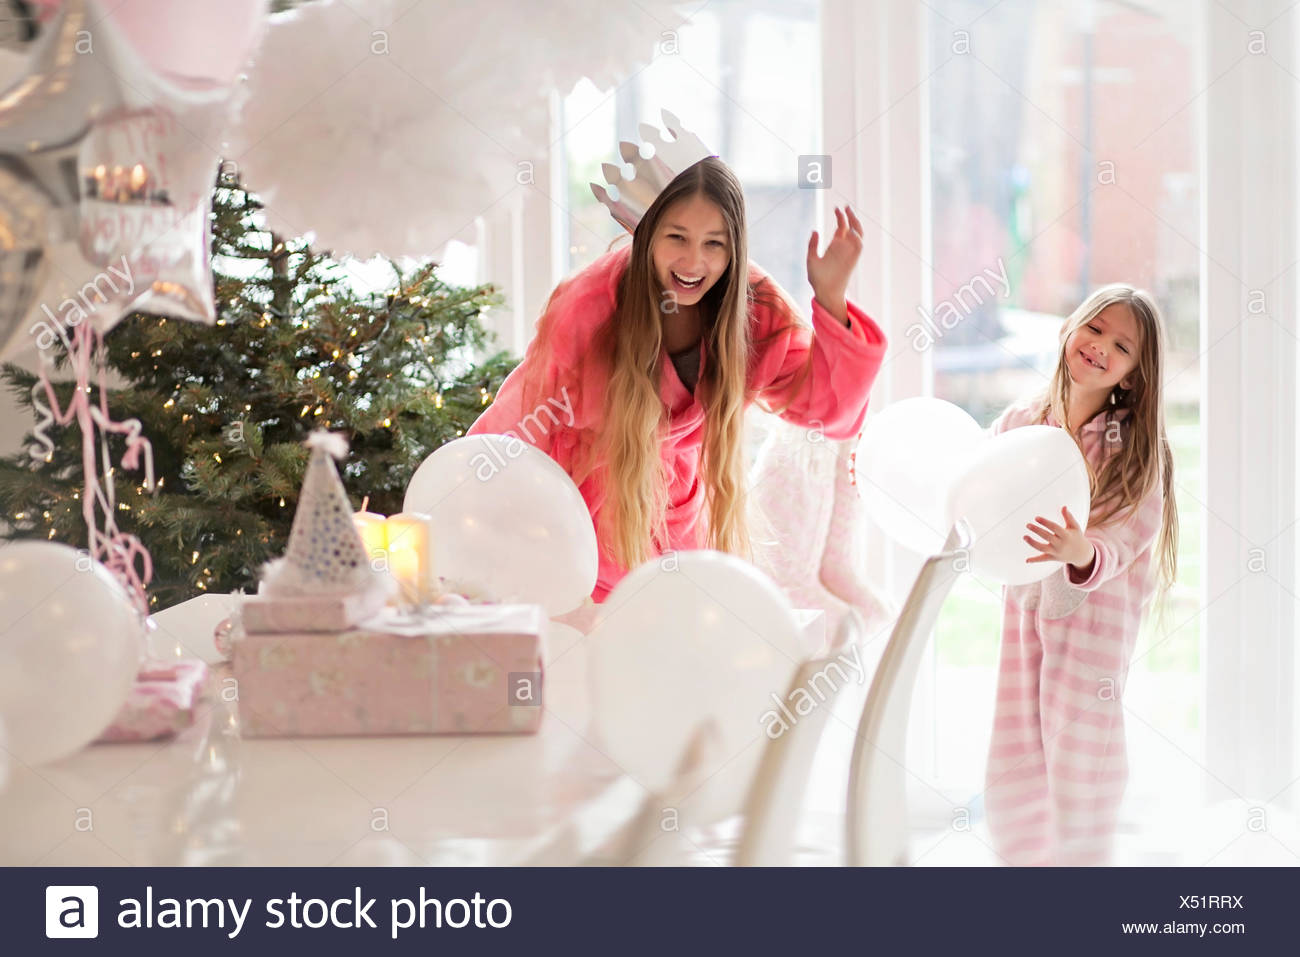 Two girls (4-5,14-15) playing with balloons by Christmas tree - Stock Image